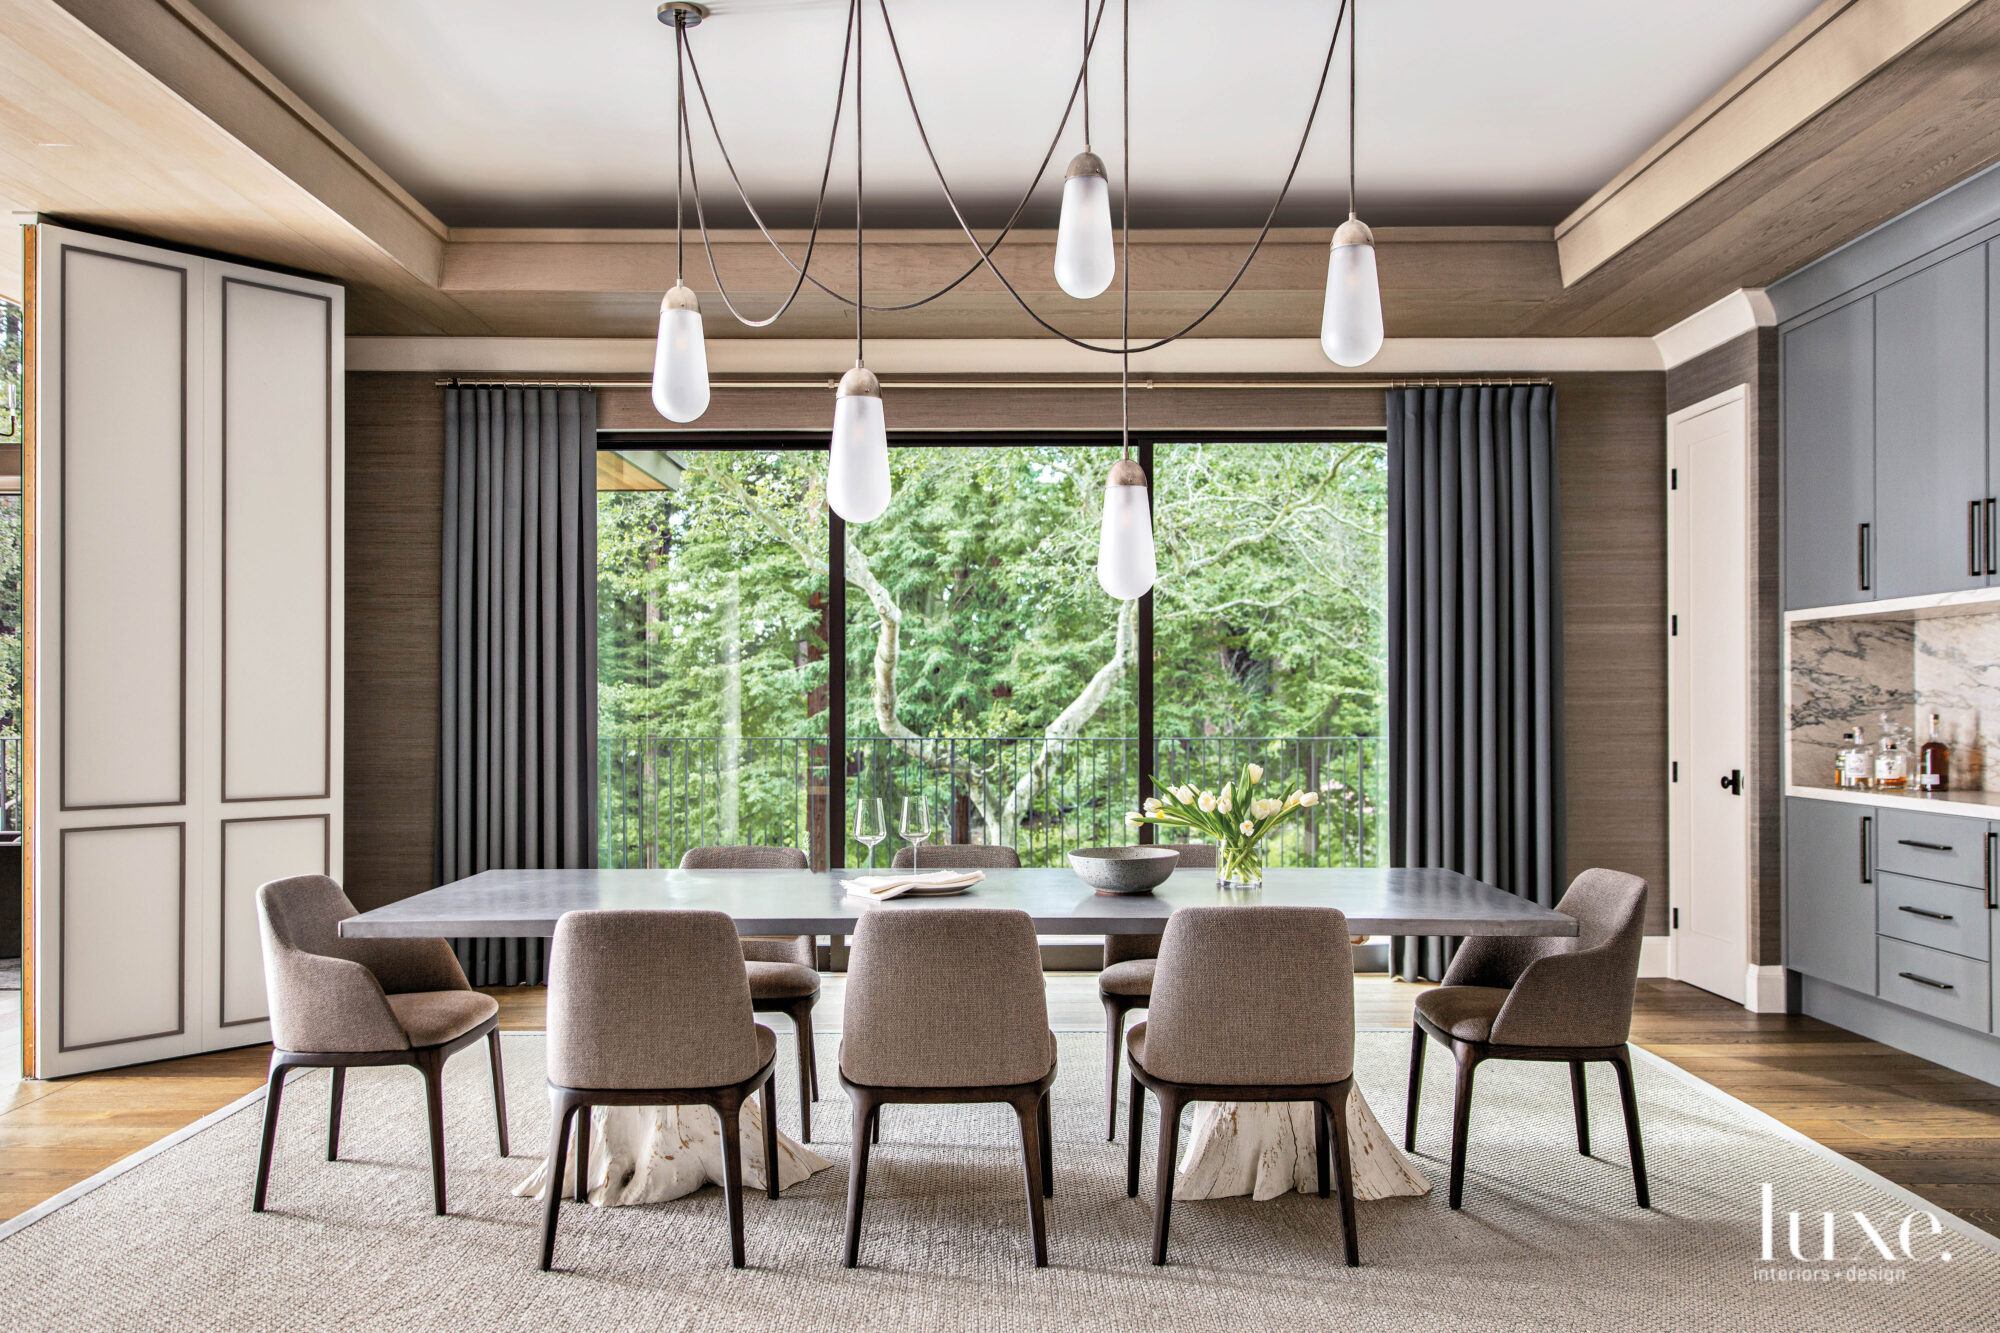 A dining room has soft neutral colors and a long table and many chairs.